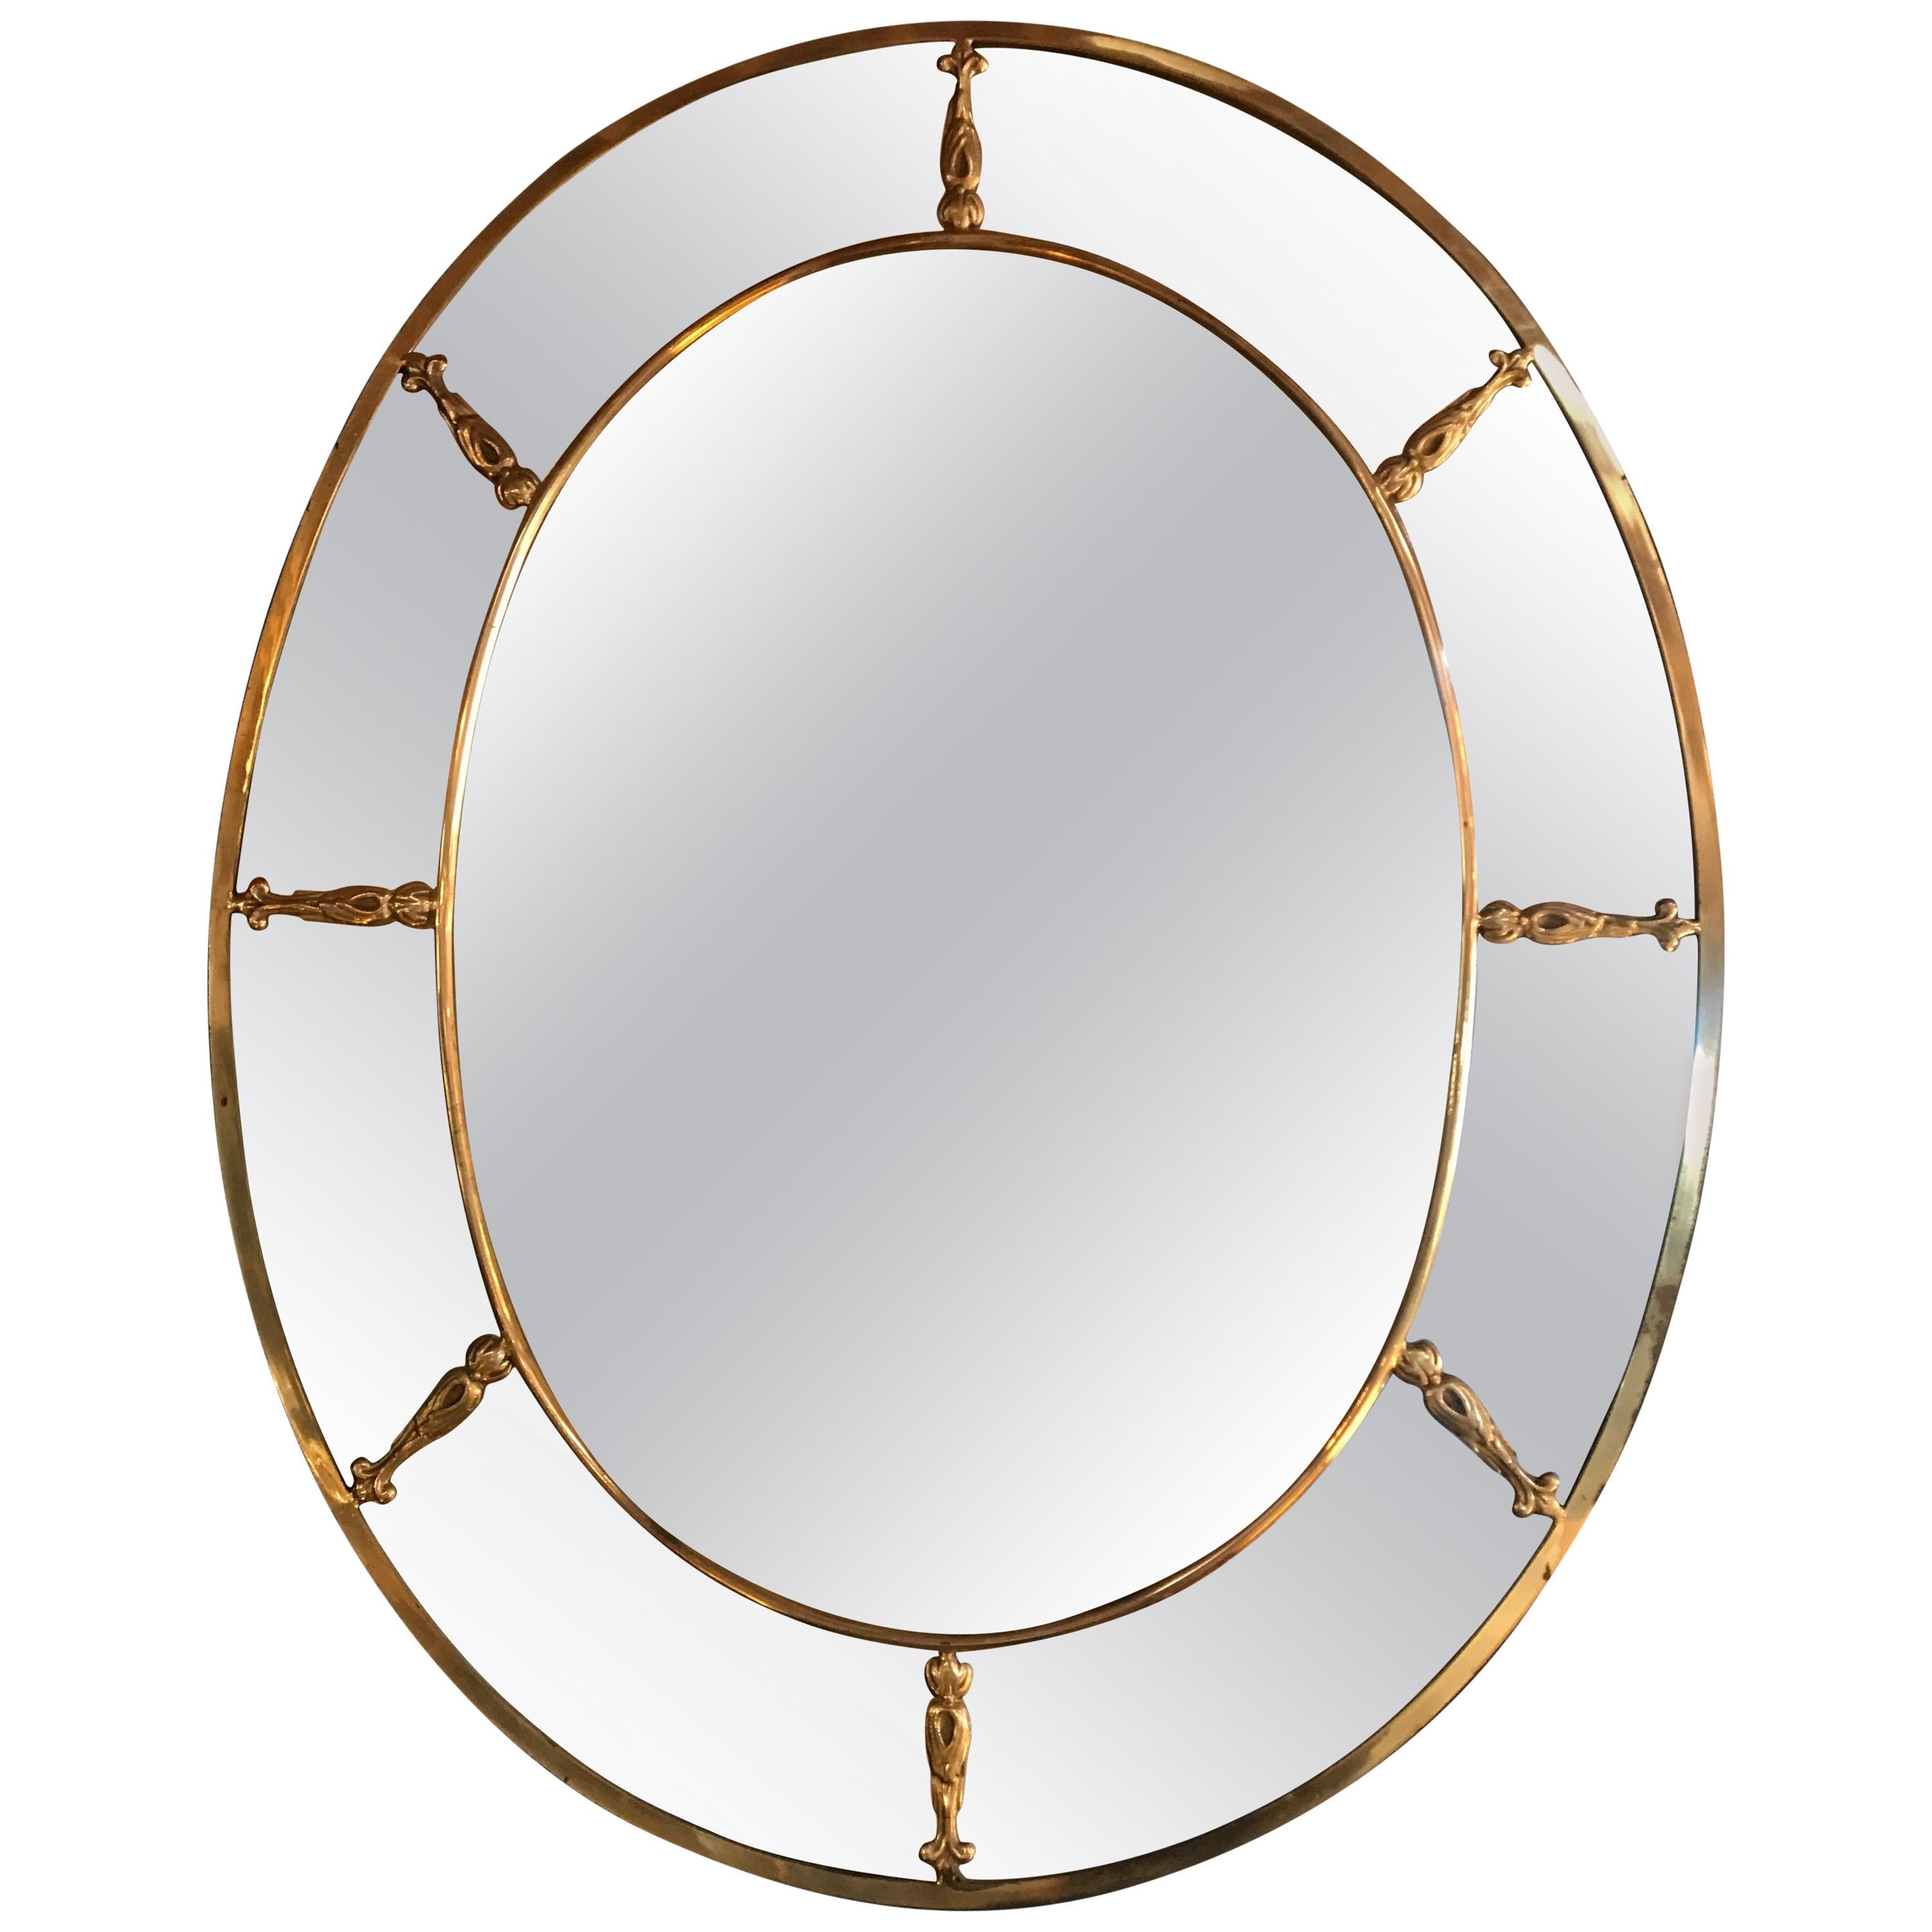 Large Oval Art Deco Mirror with Brass Decorations, Italy, 1930s